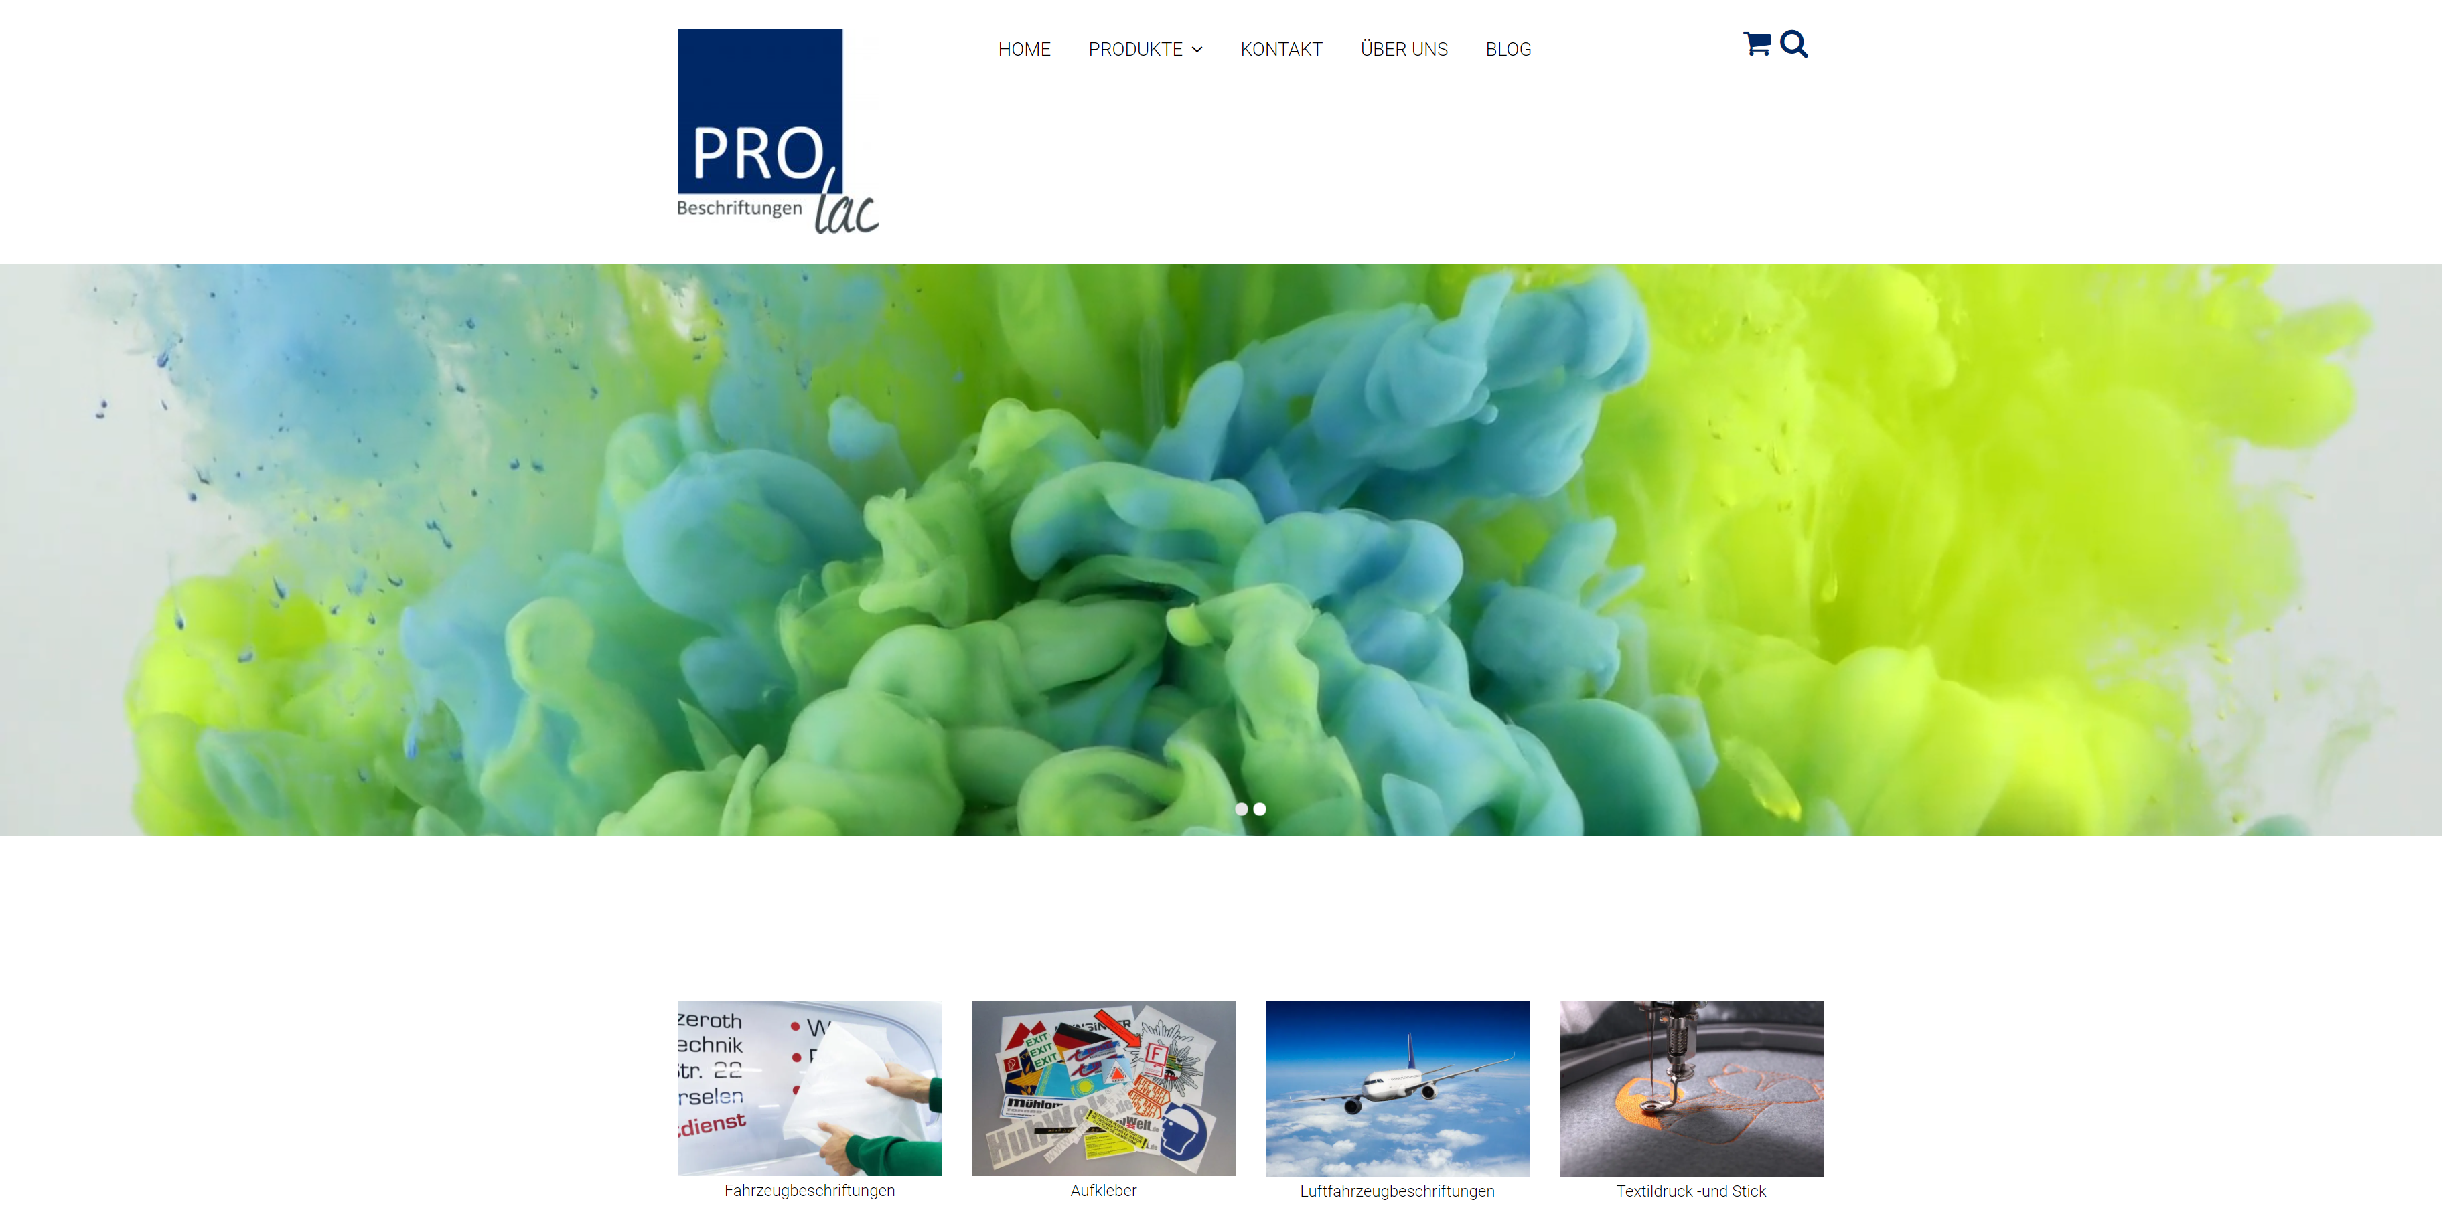 Datasys_IT-Solution_IT-Betreuung_Prolac